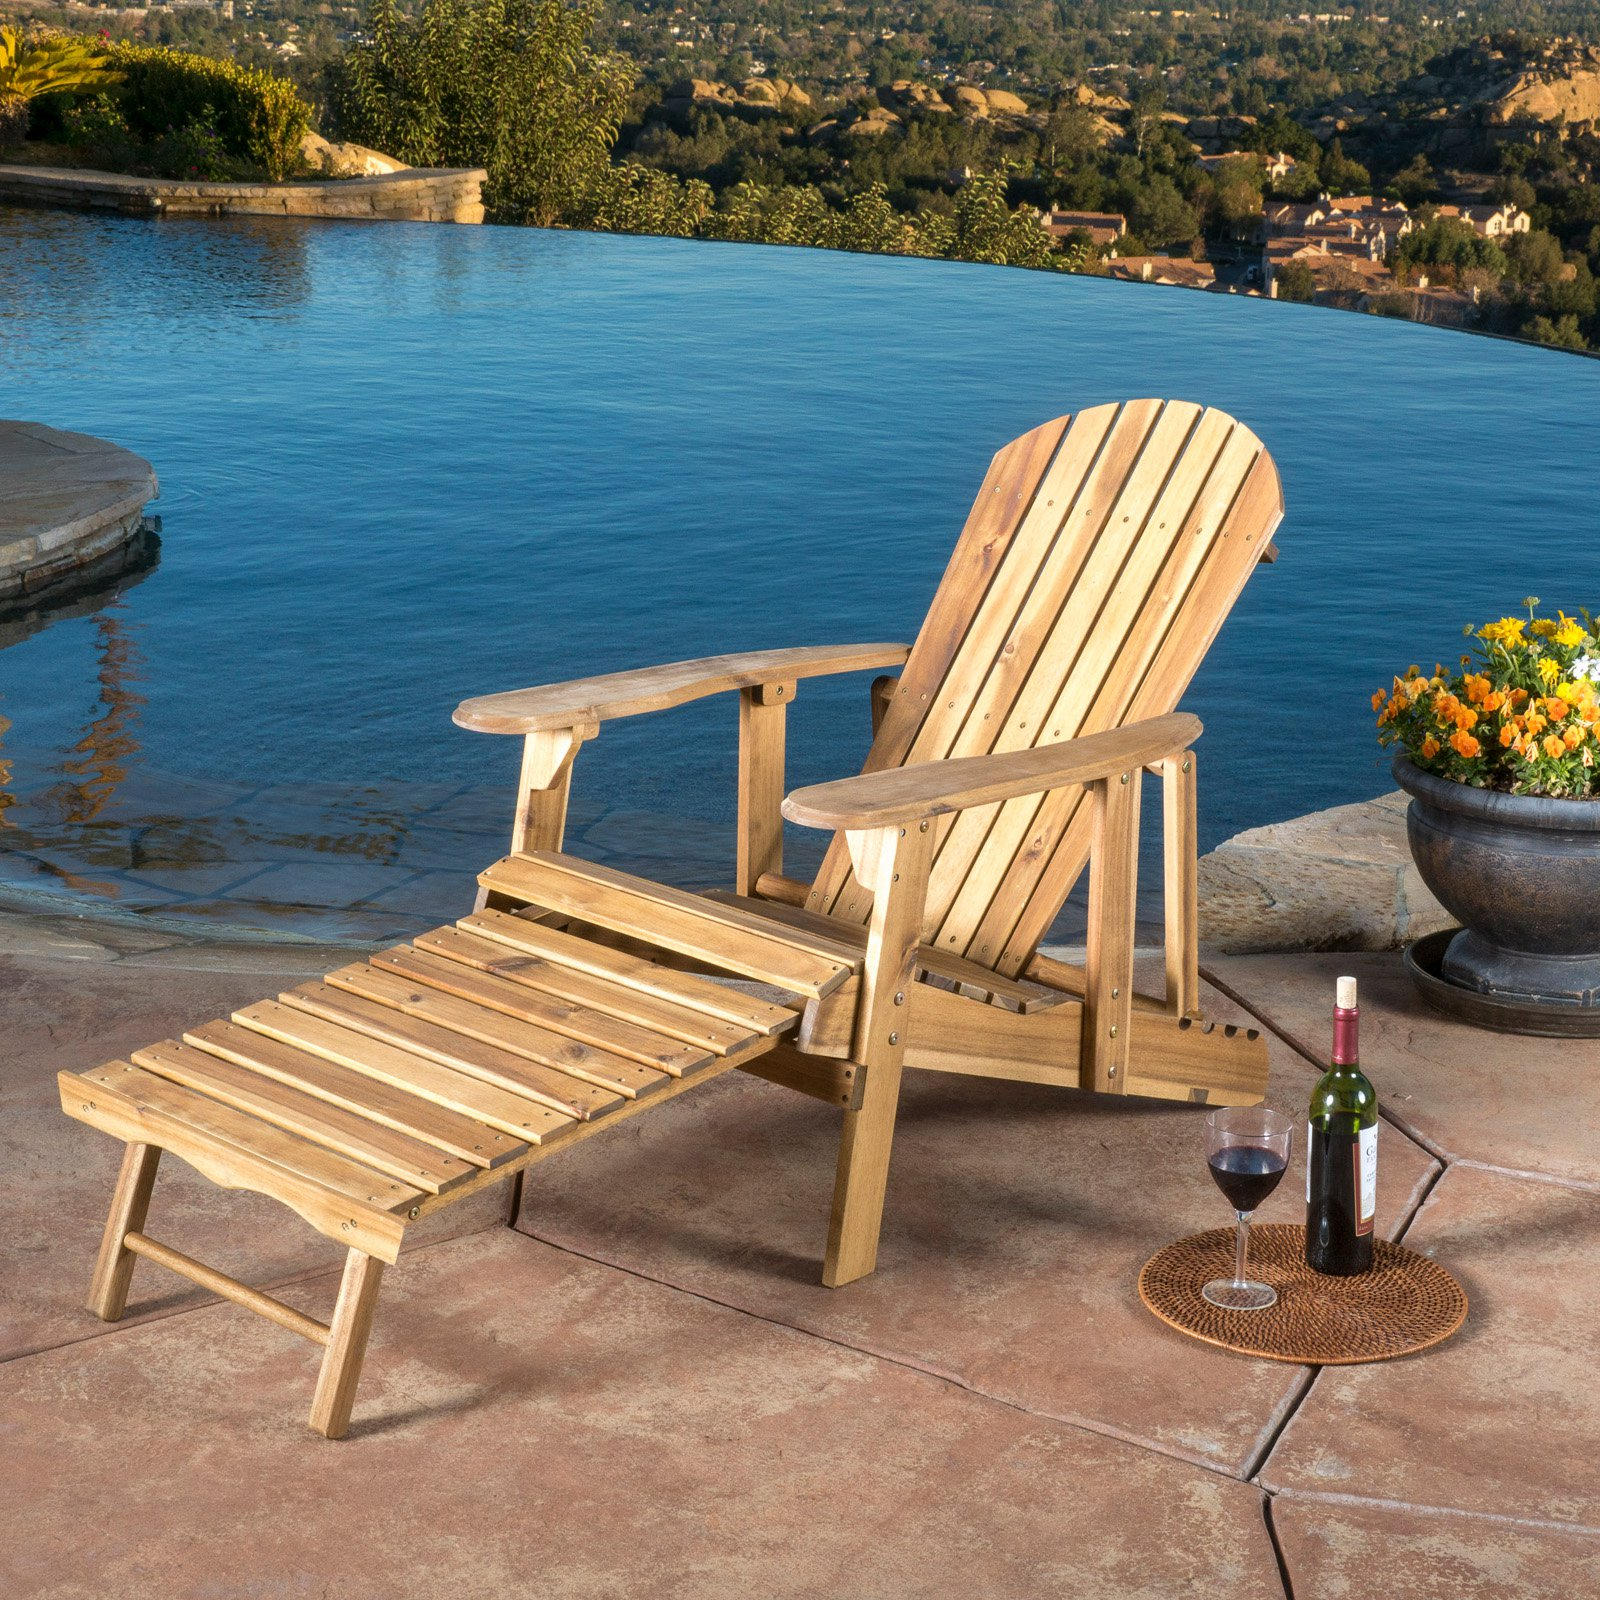 Hayle Reclining Adirondack Chair with Footrest Set of 2 by Best Selling Home Decor Furniture LLC